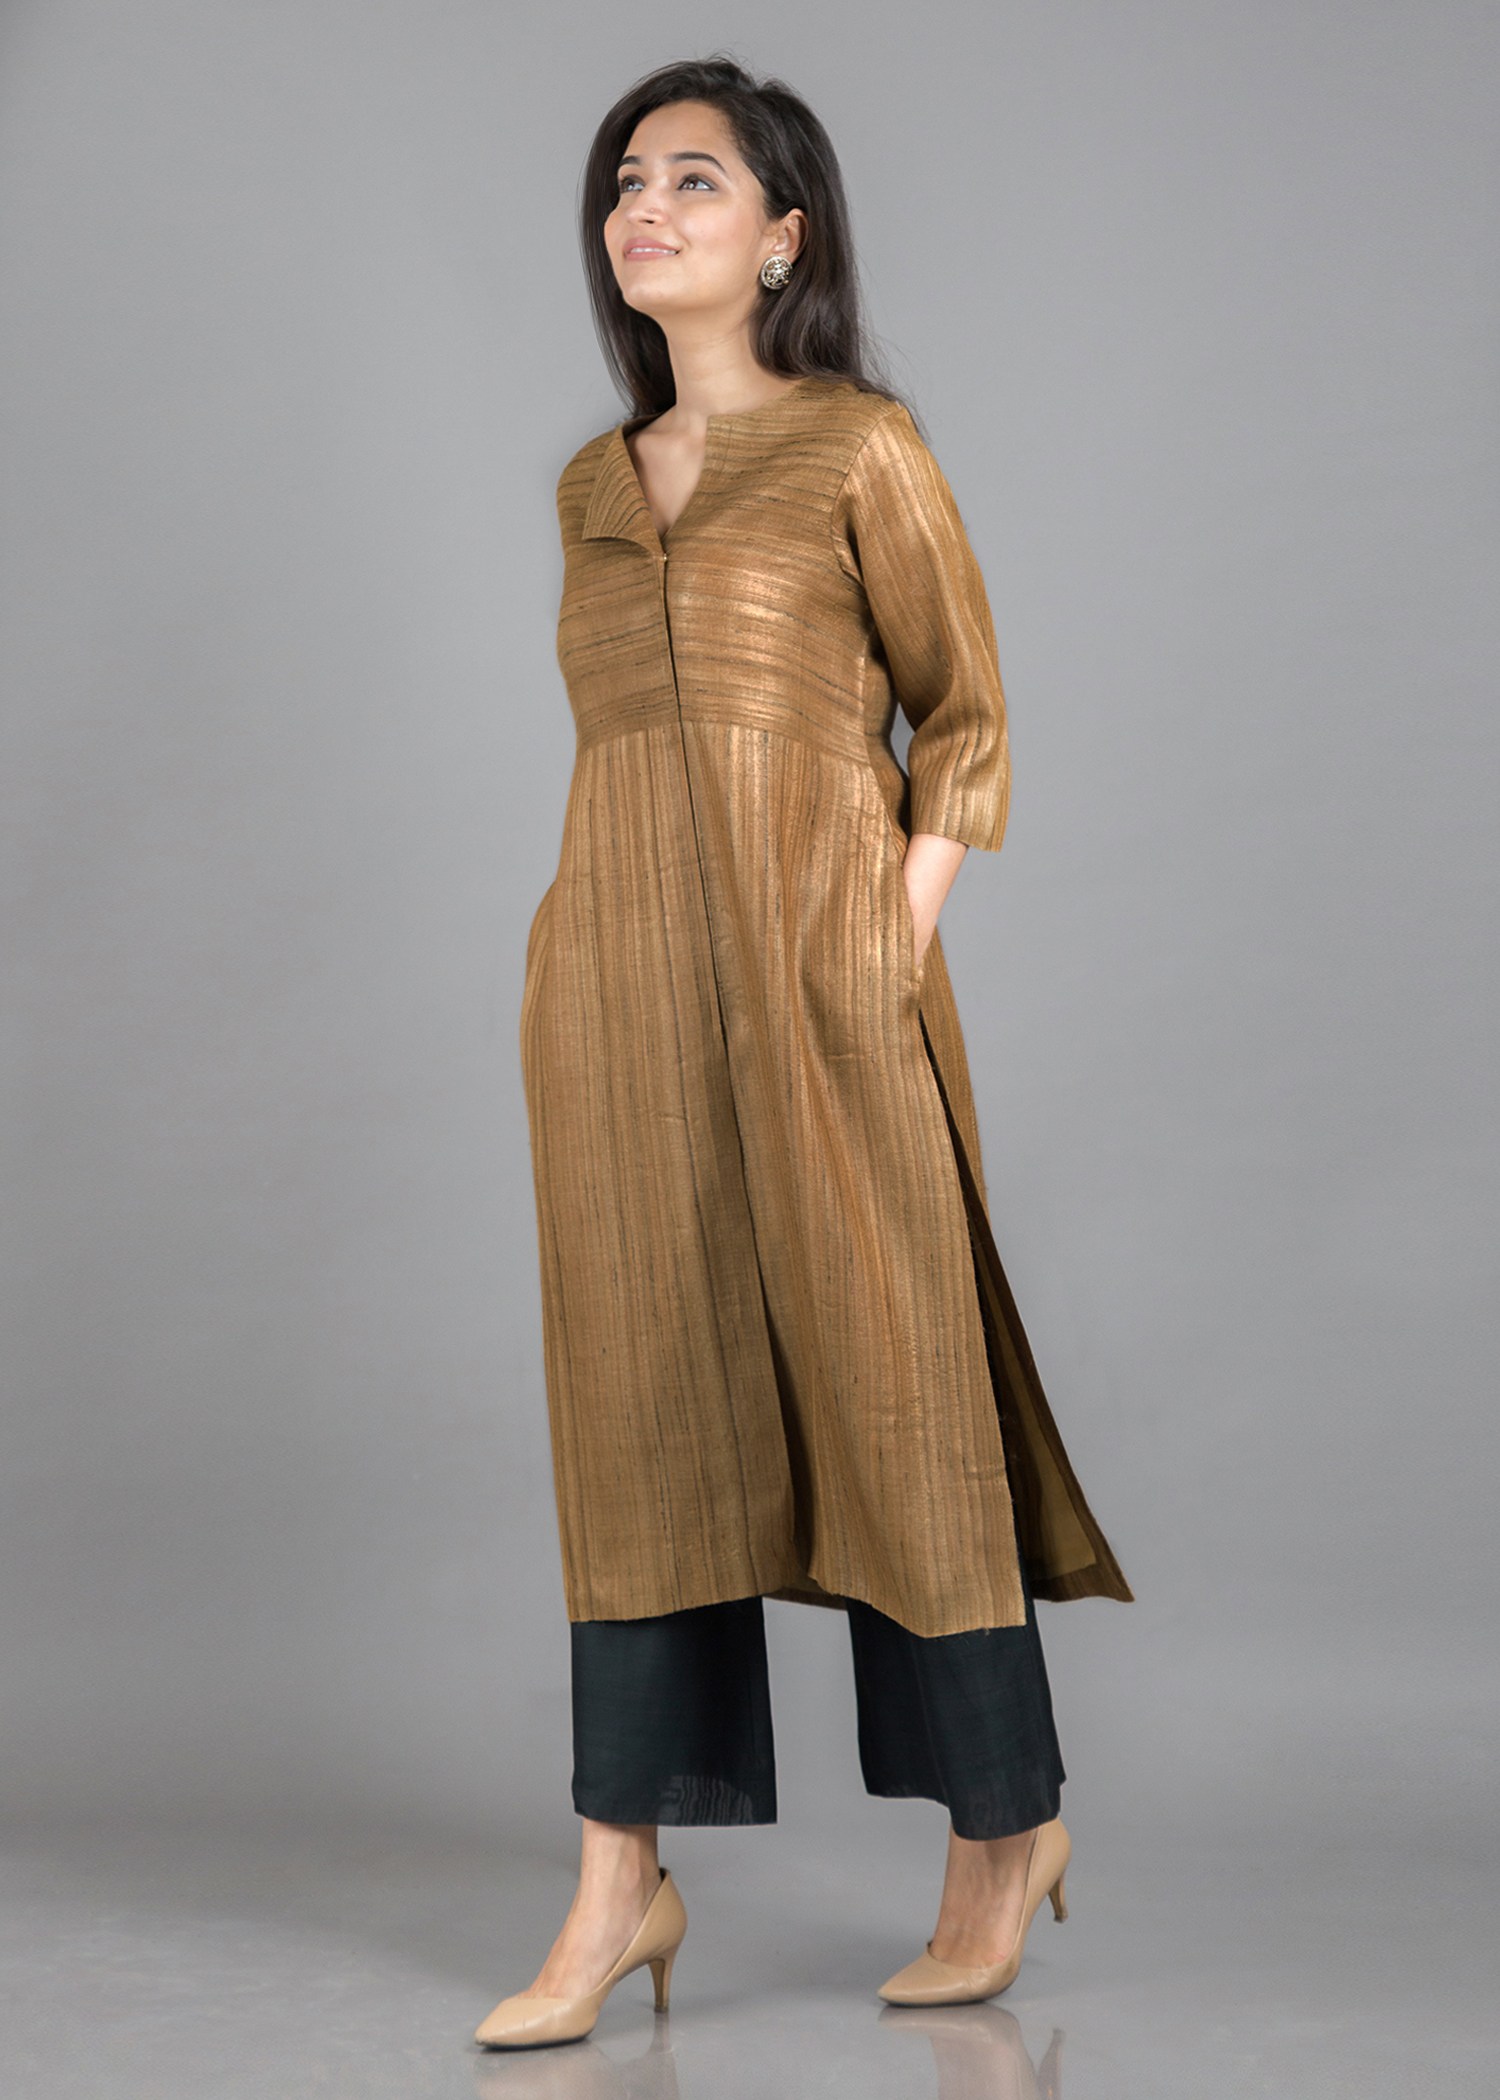 Gold Beige Handwoven Pure Kosa Silk Kurta with Flap